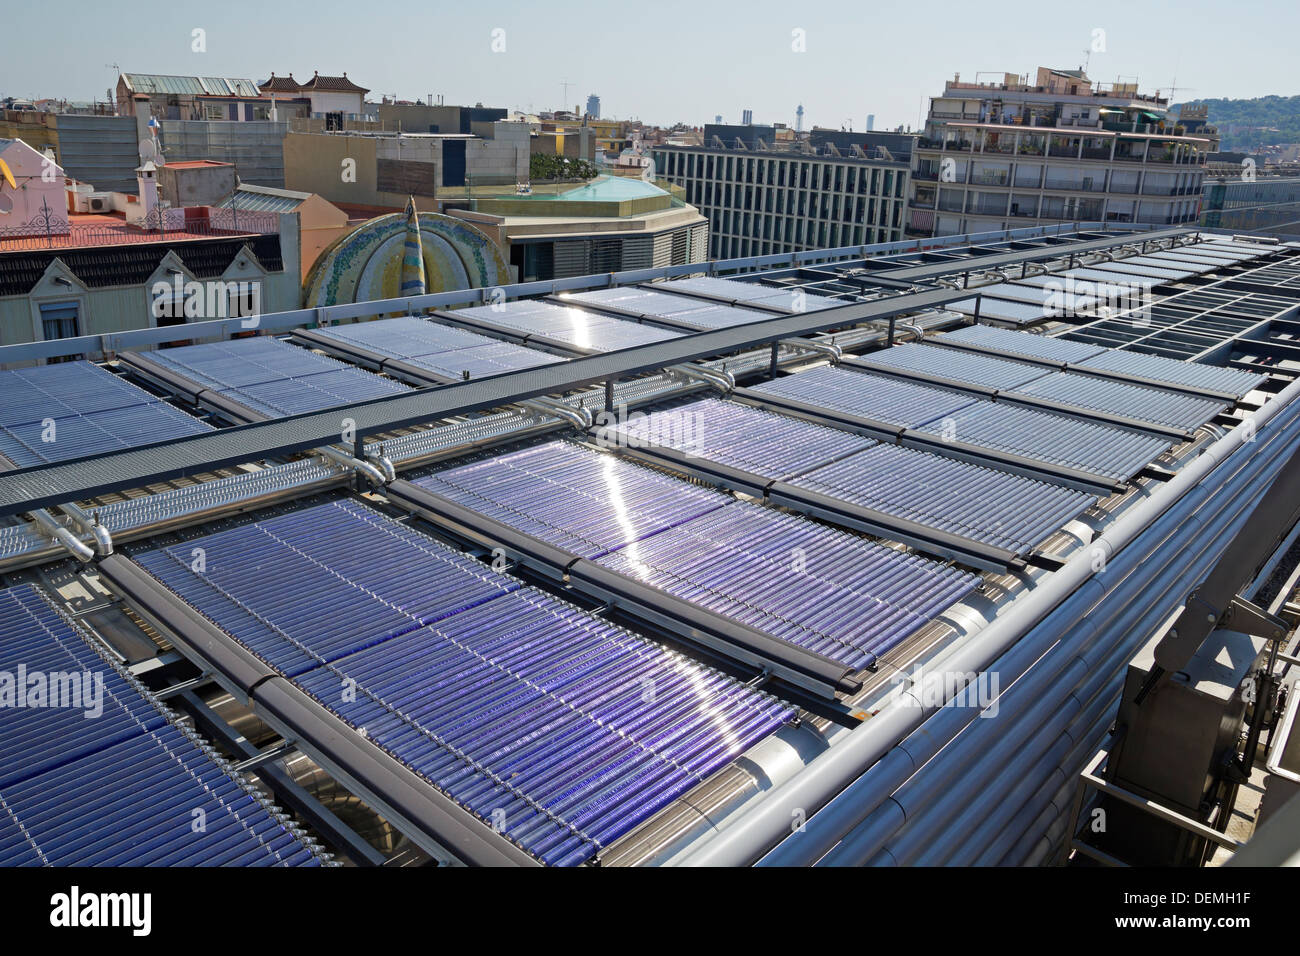 Solar vacuum tube in an urban building, greater energy efficiency. - Stock Image